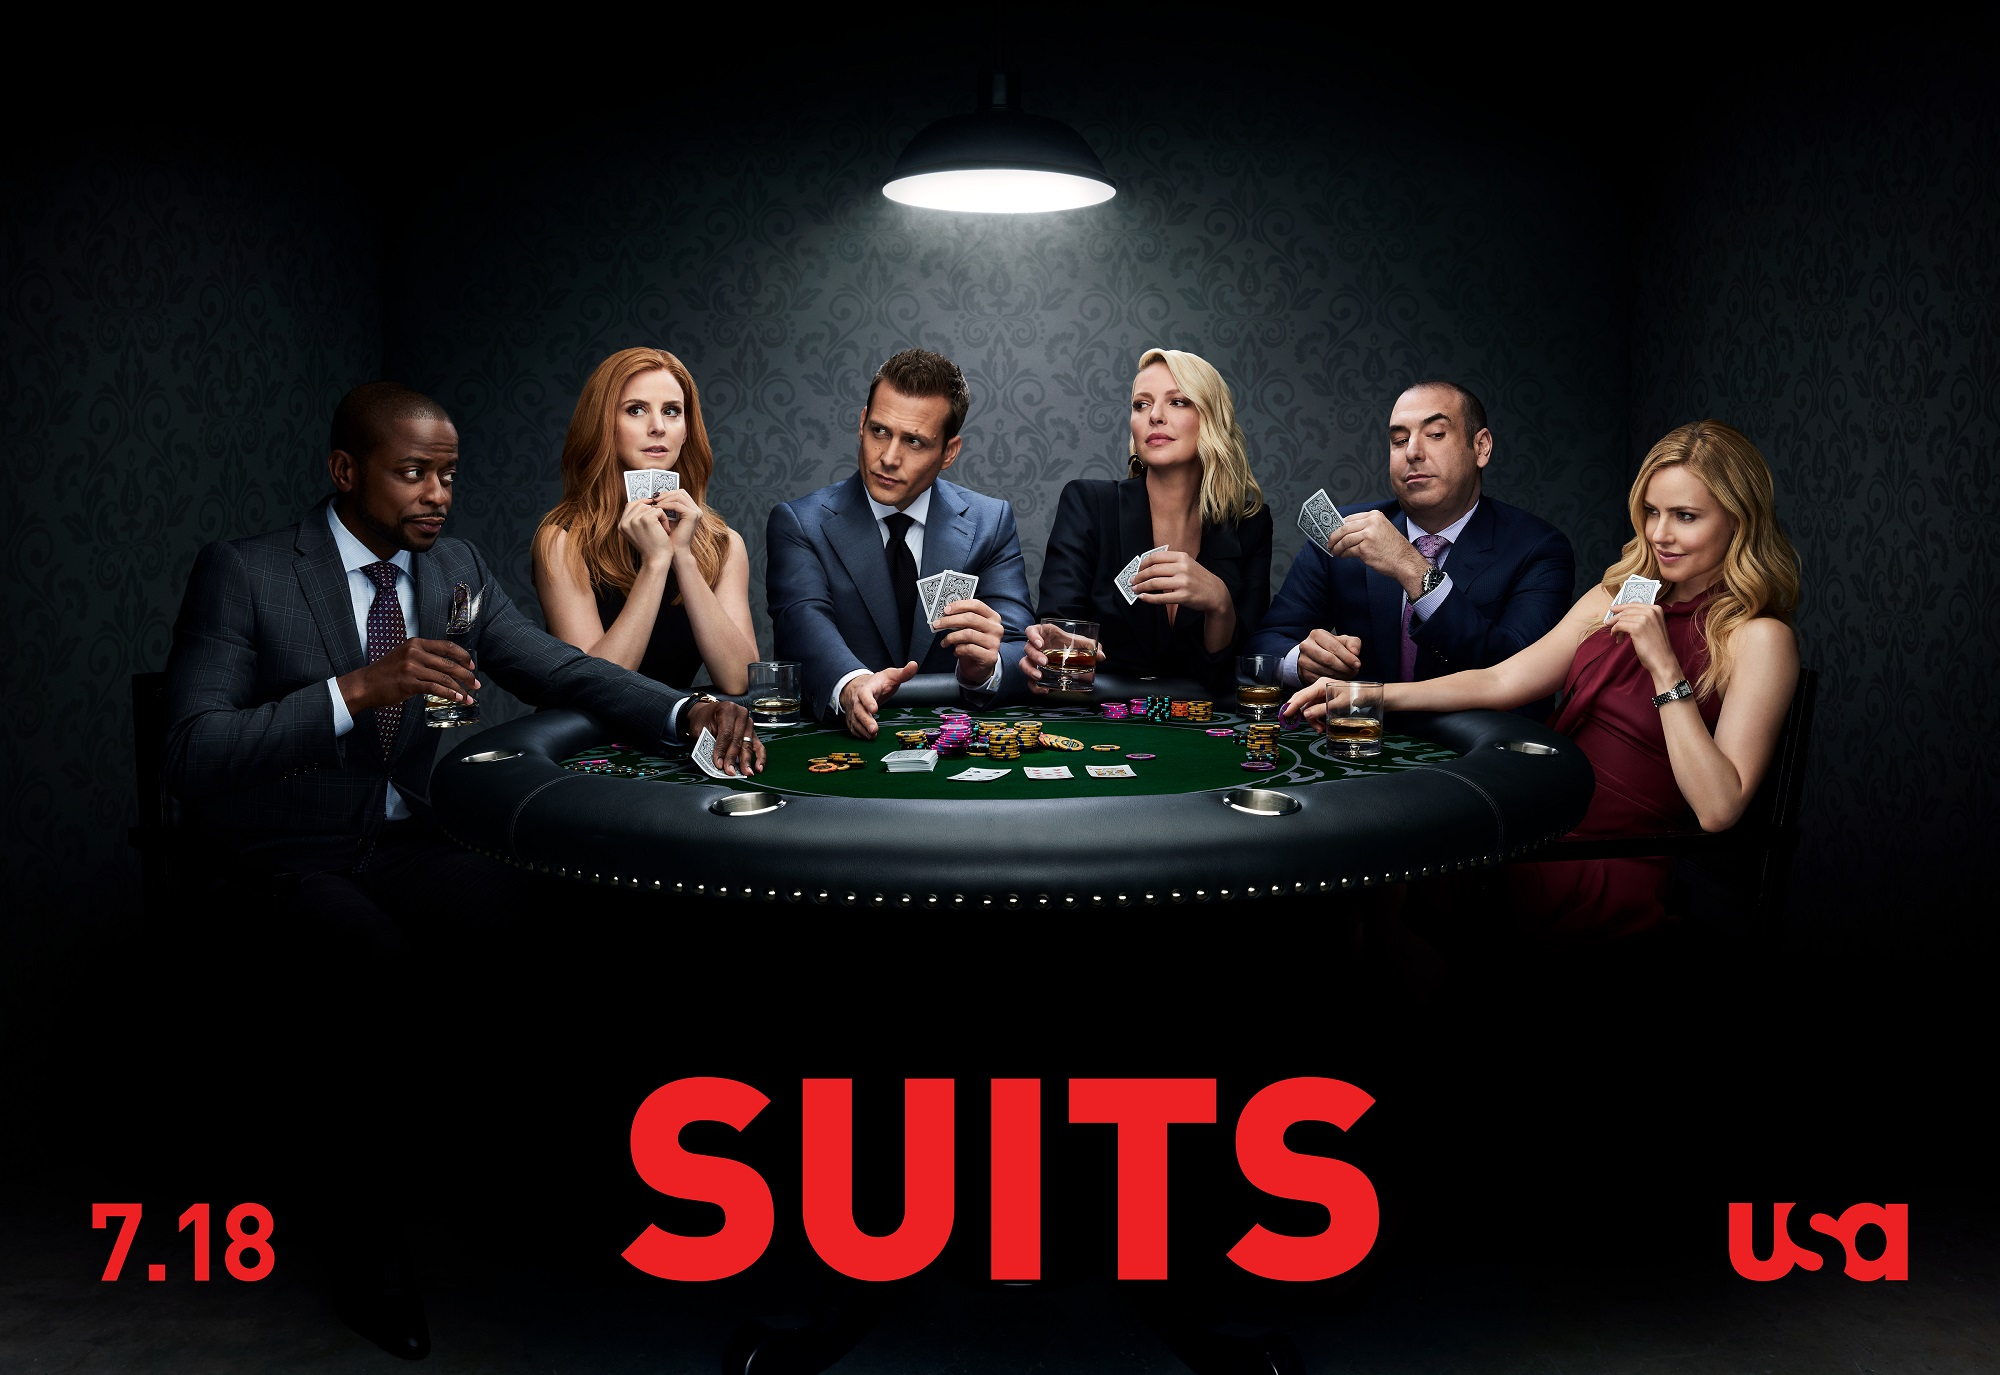 Suits Season 8 Episode 14 What to Expect